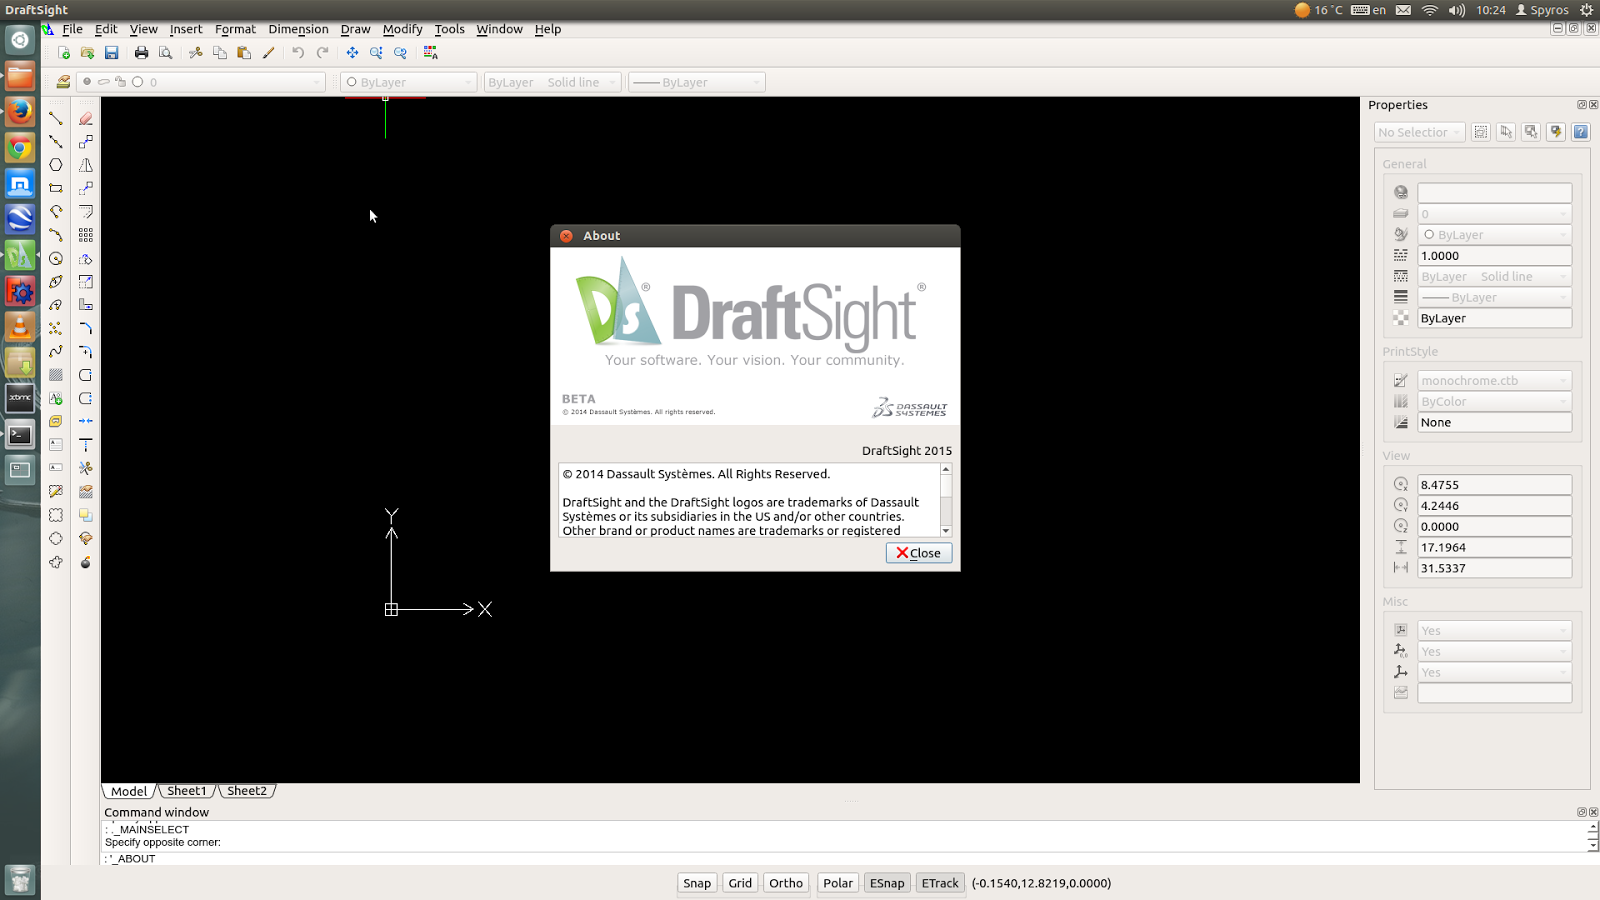 Draftsight 2018 download 64 bit | 64 Bit Draftsight  2019-03-24